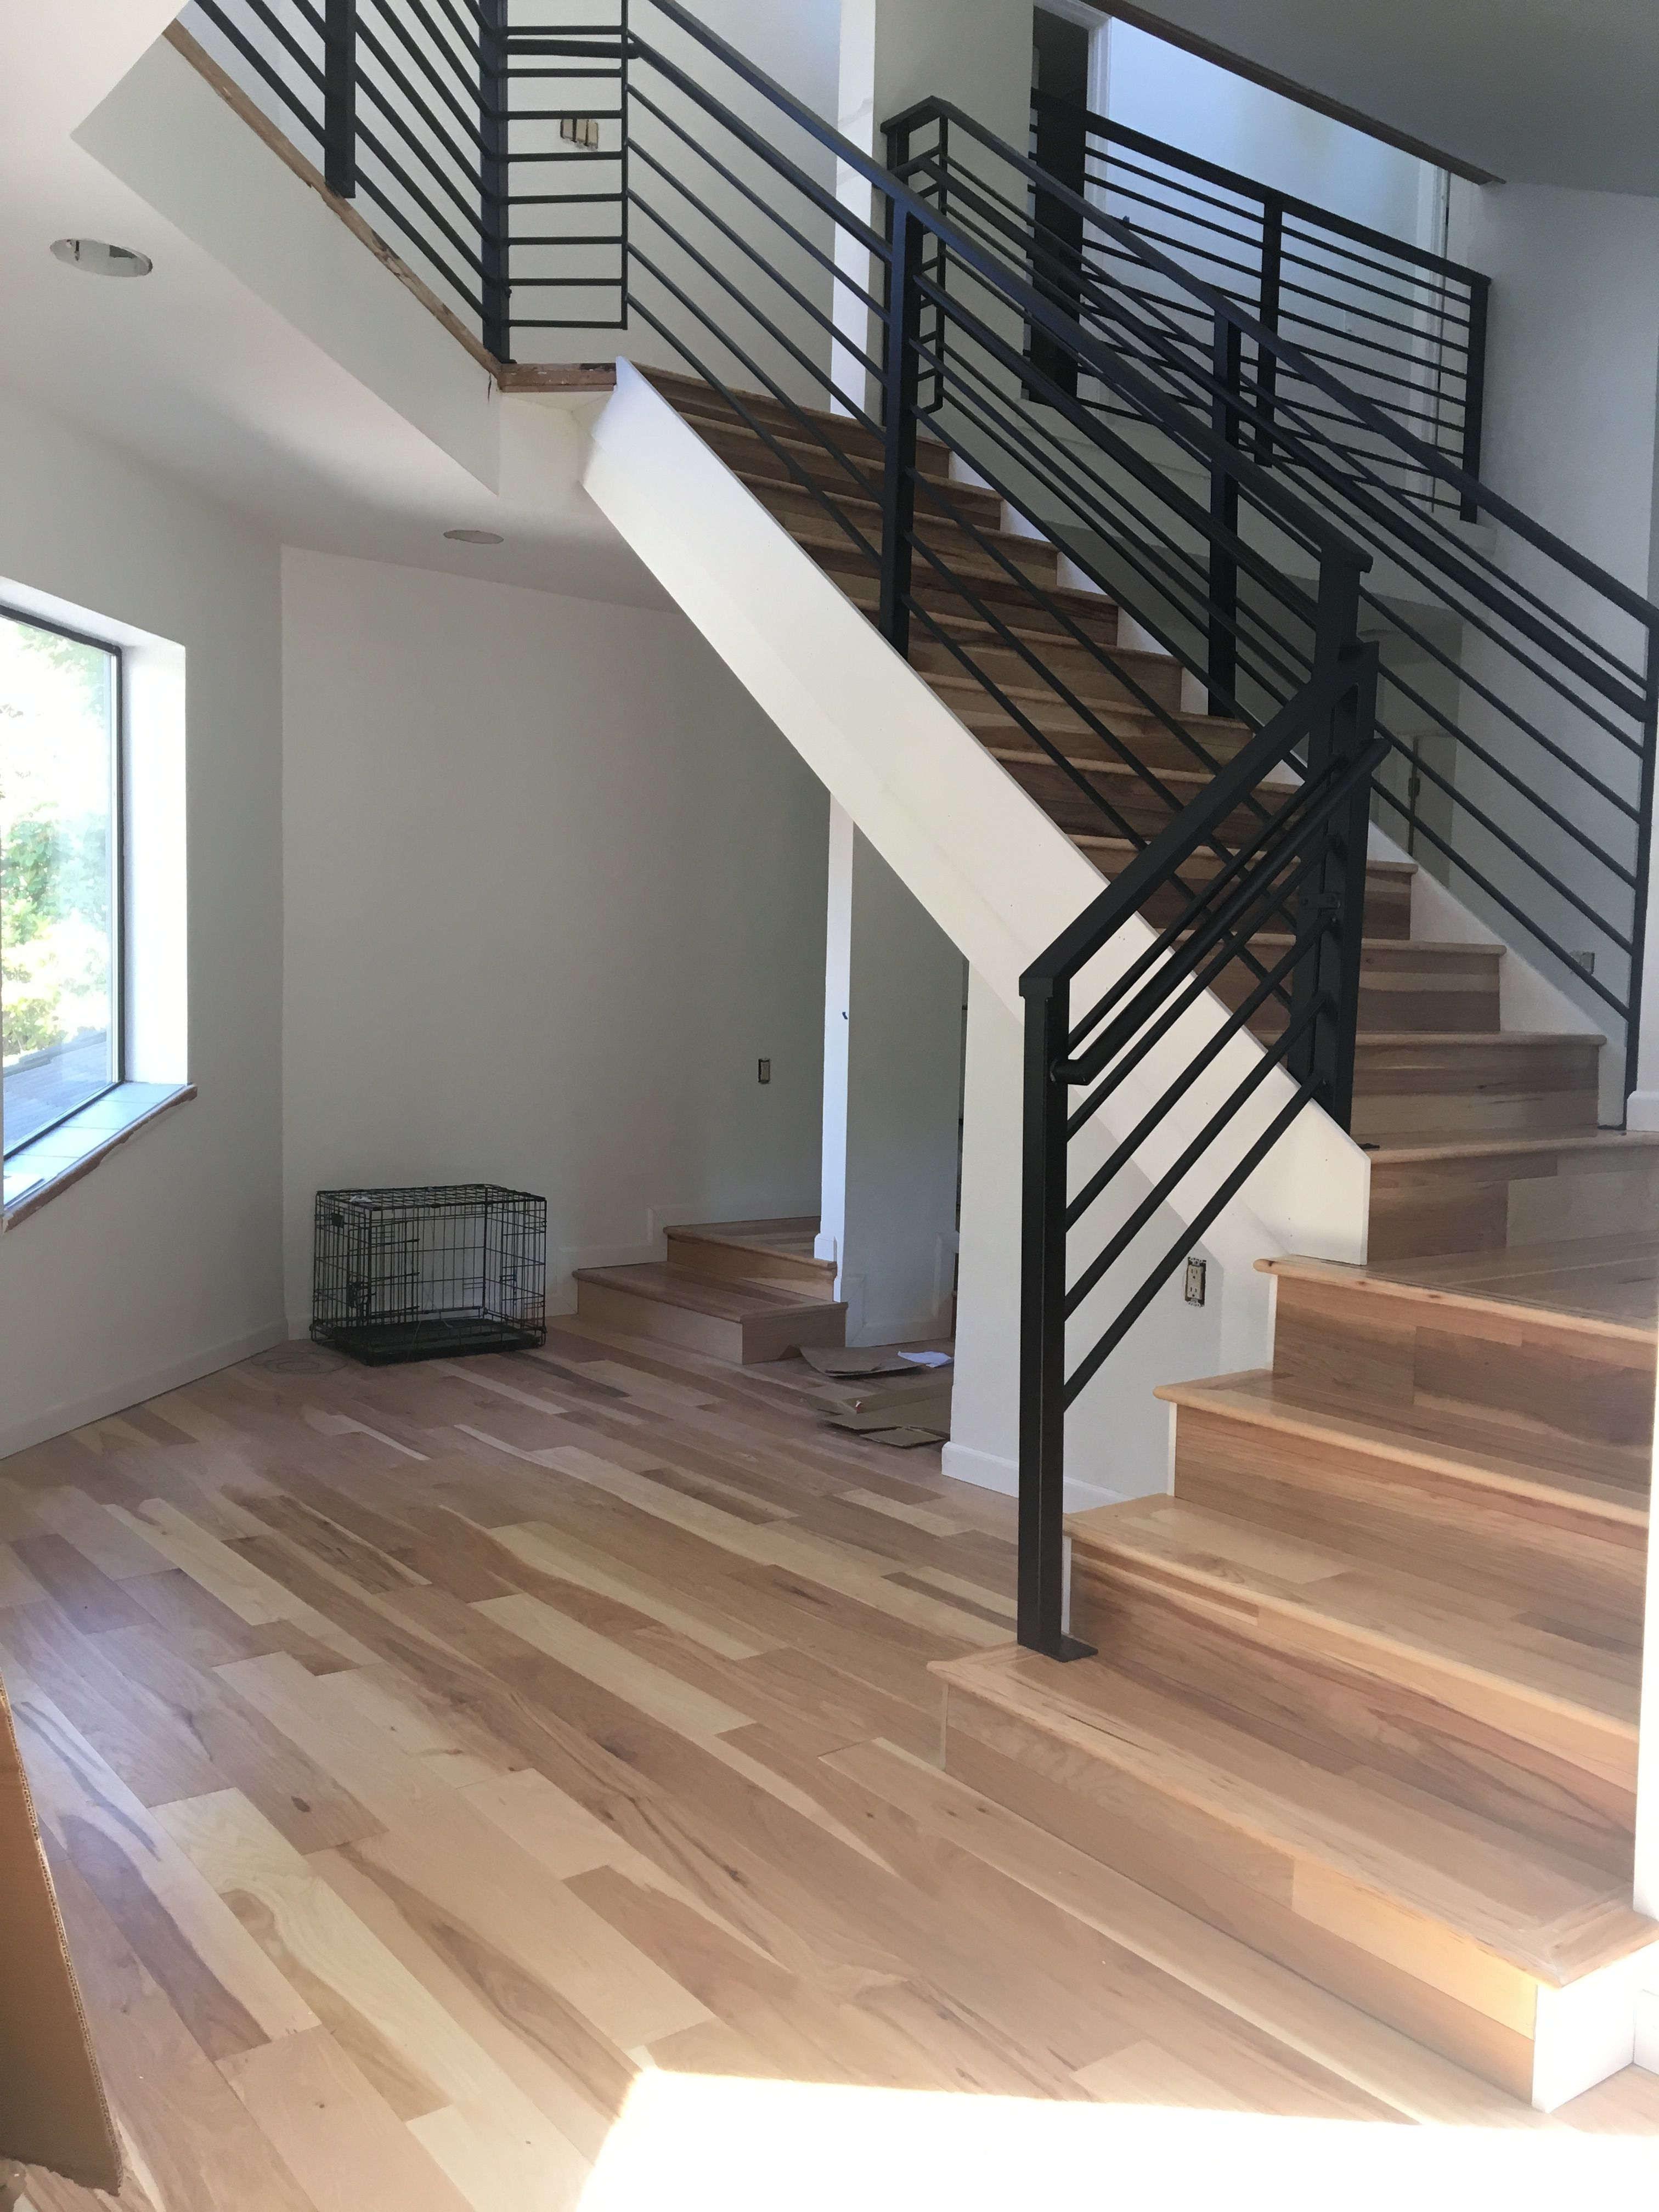 After Living Room Stair Railing Black Horizontal Powder Coated Stainless